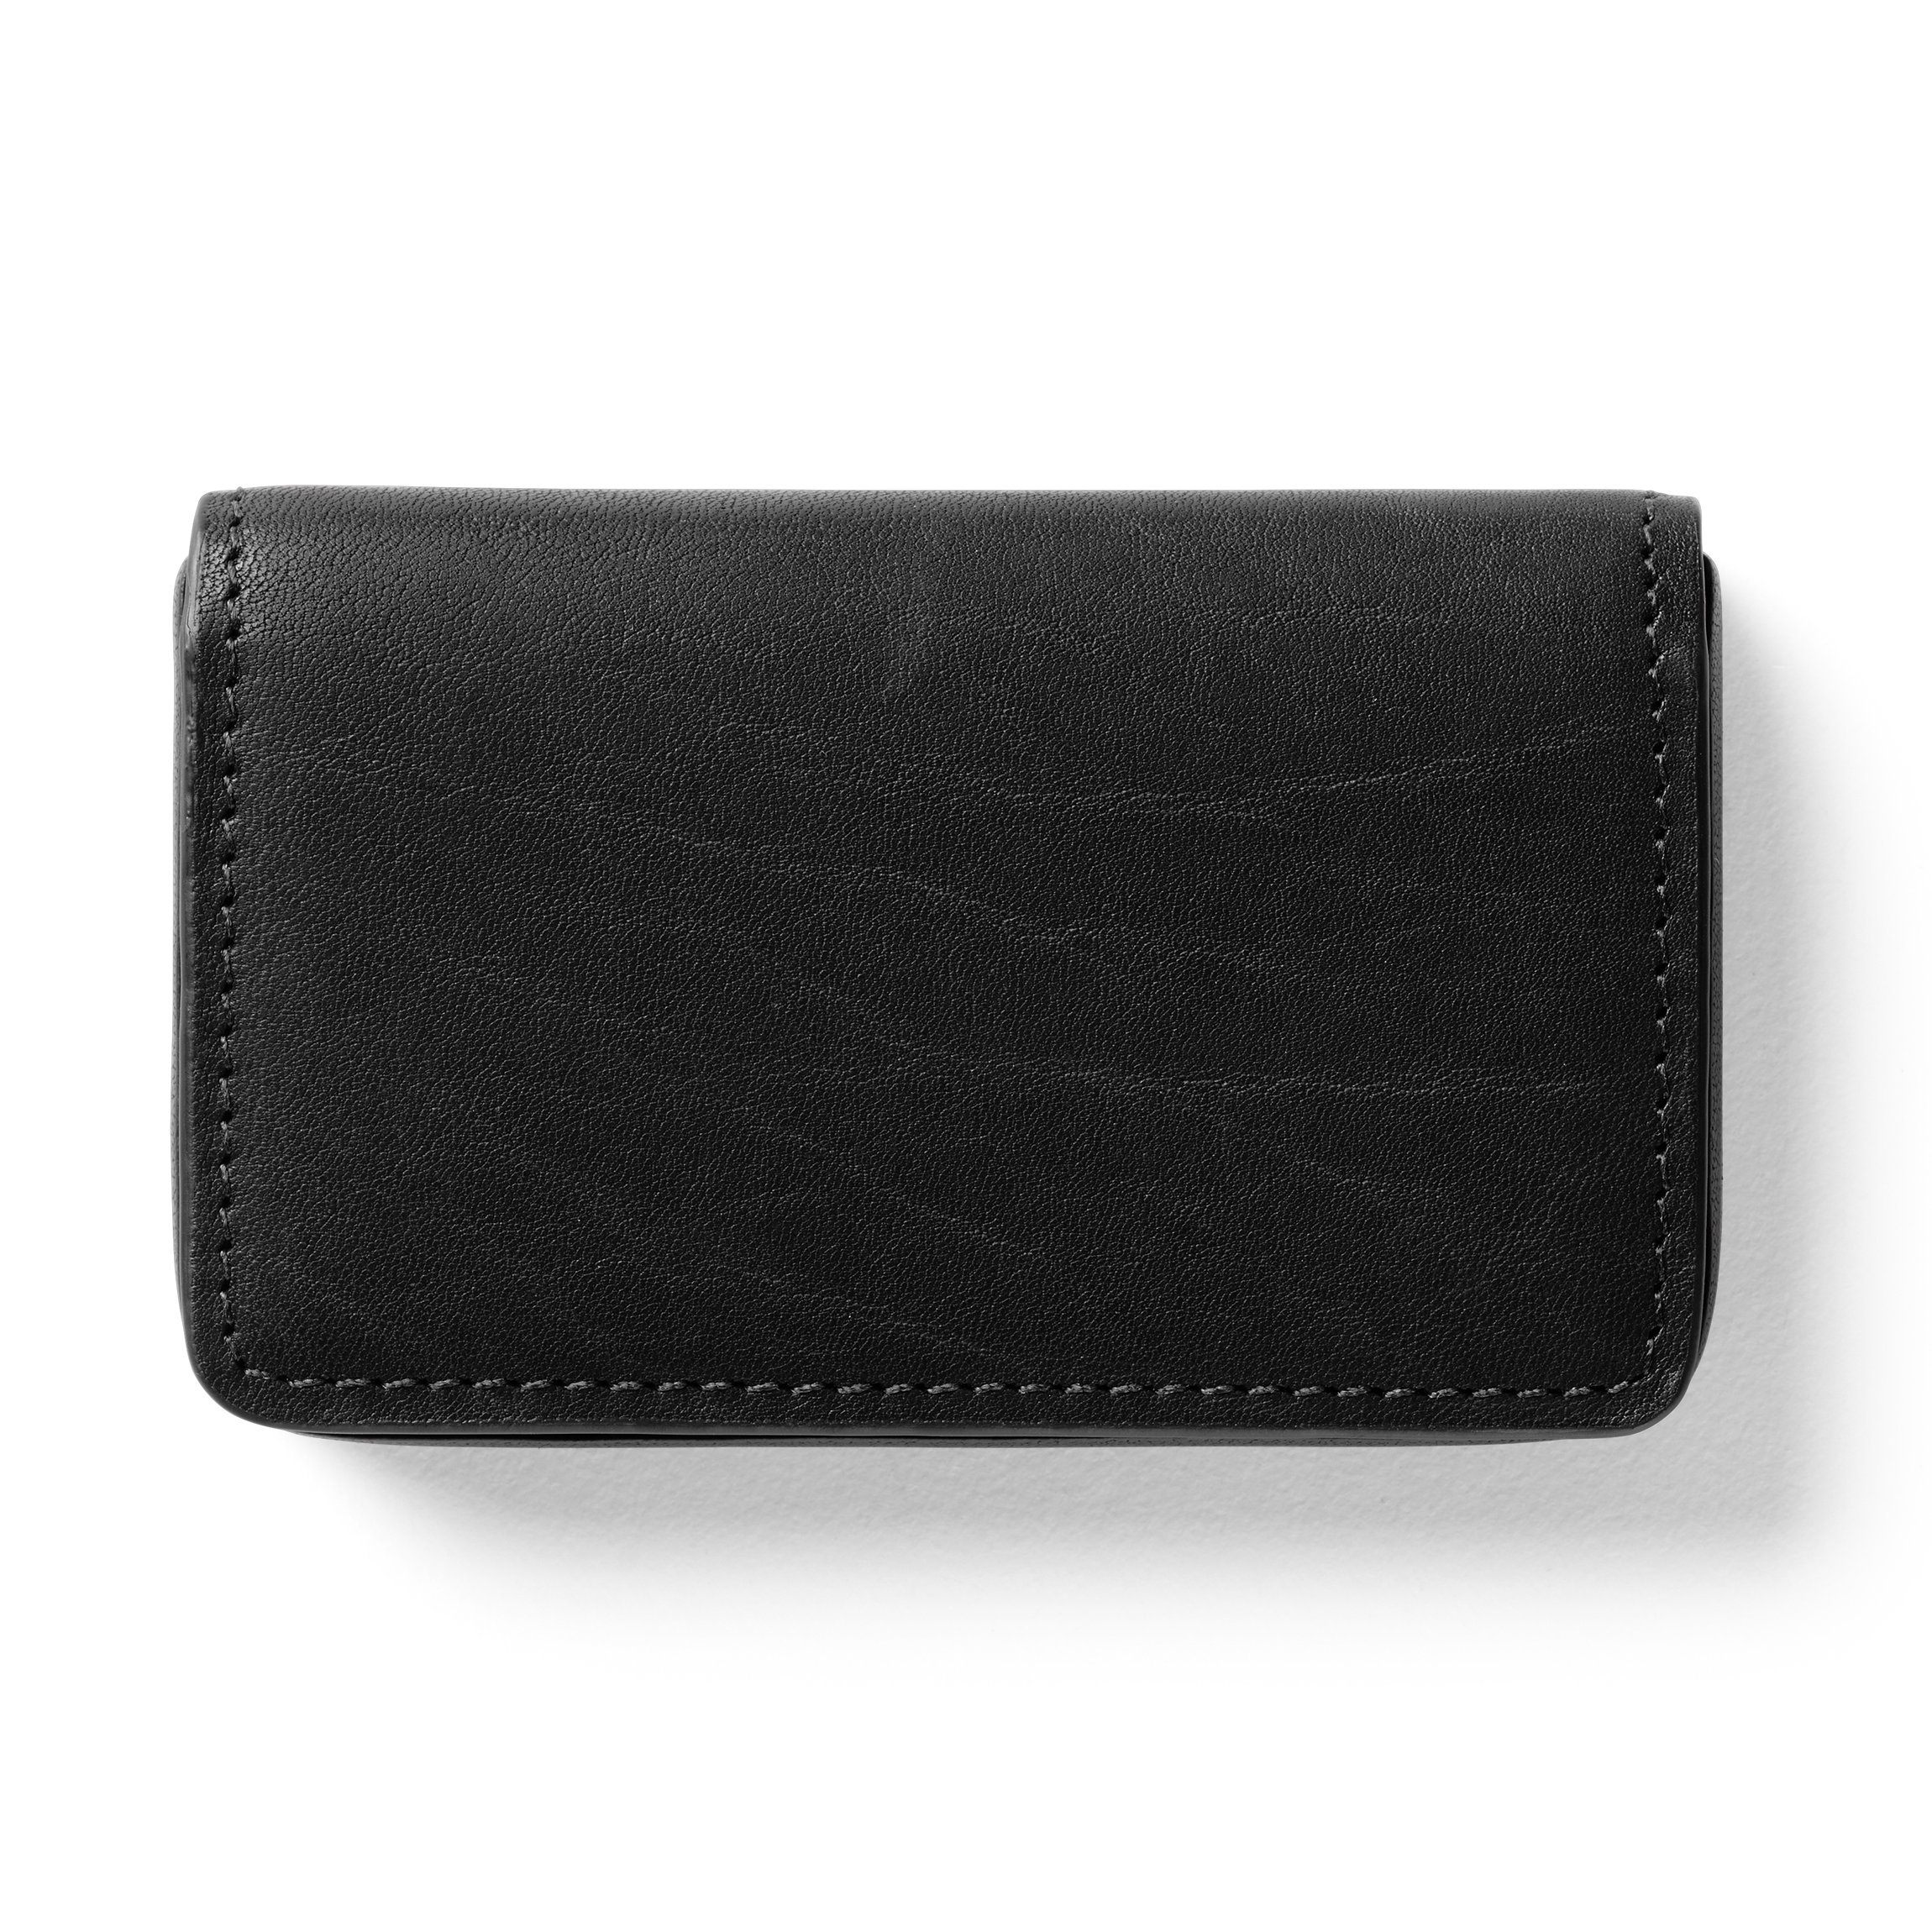 Business Card Case - German Leather - Black Oil (black)